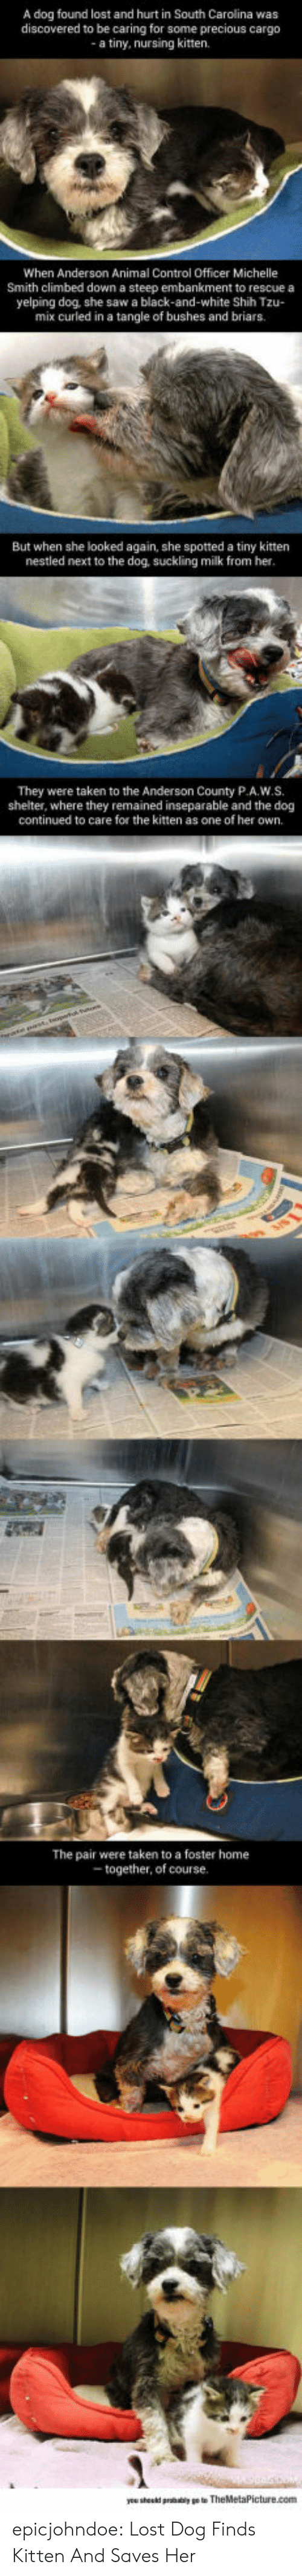 Spotted: A dog found lost and hurt in South Carolina was  discovered to be caring for some precious cargo  a tiny, nursing kitten.  When Anderson Animal Control Officer Michelle  Smith climbed down a steep embankment to rescue a  yelping dog, she saw a black-and-white Shih Tzu-  mix curled in a tangle of bushes and briars.  But when she looked again, she spotted a tiny kitten  nestled next to the dog, suckling milk from her  They were taken to the Anderson County P.A.W.S.  shelter, where they remained inseparable and the dog  continued to care for the kitten as one of her own.  The pair were taken to a foster home  together, of course epicjohndoe:  Lost Dog Finds Kitten And Saves Her